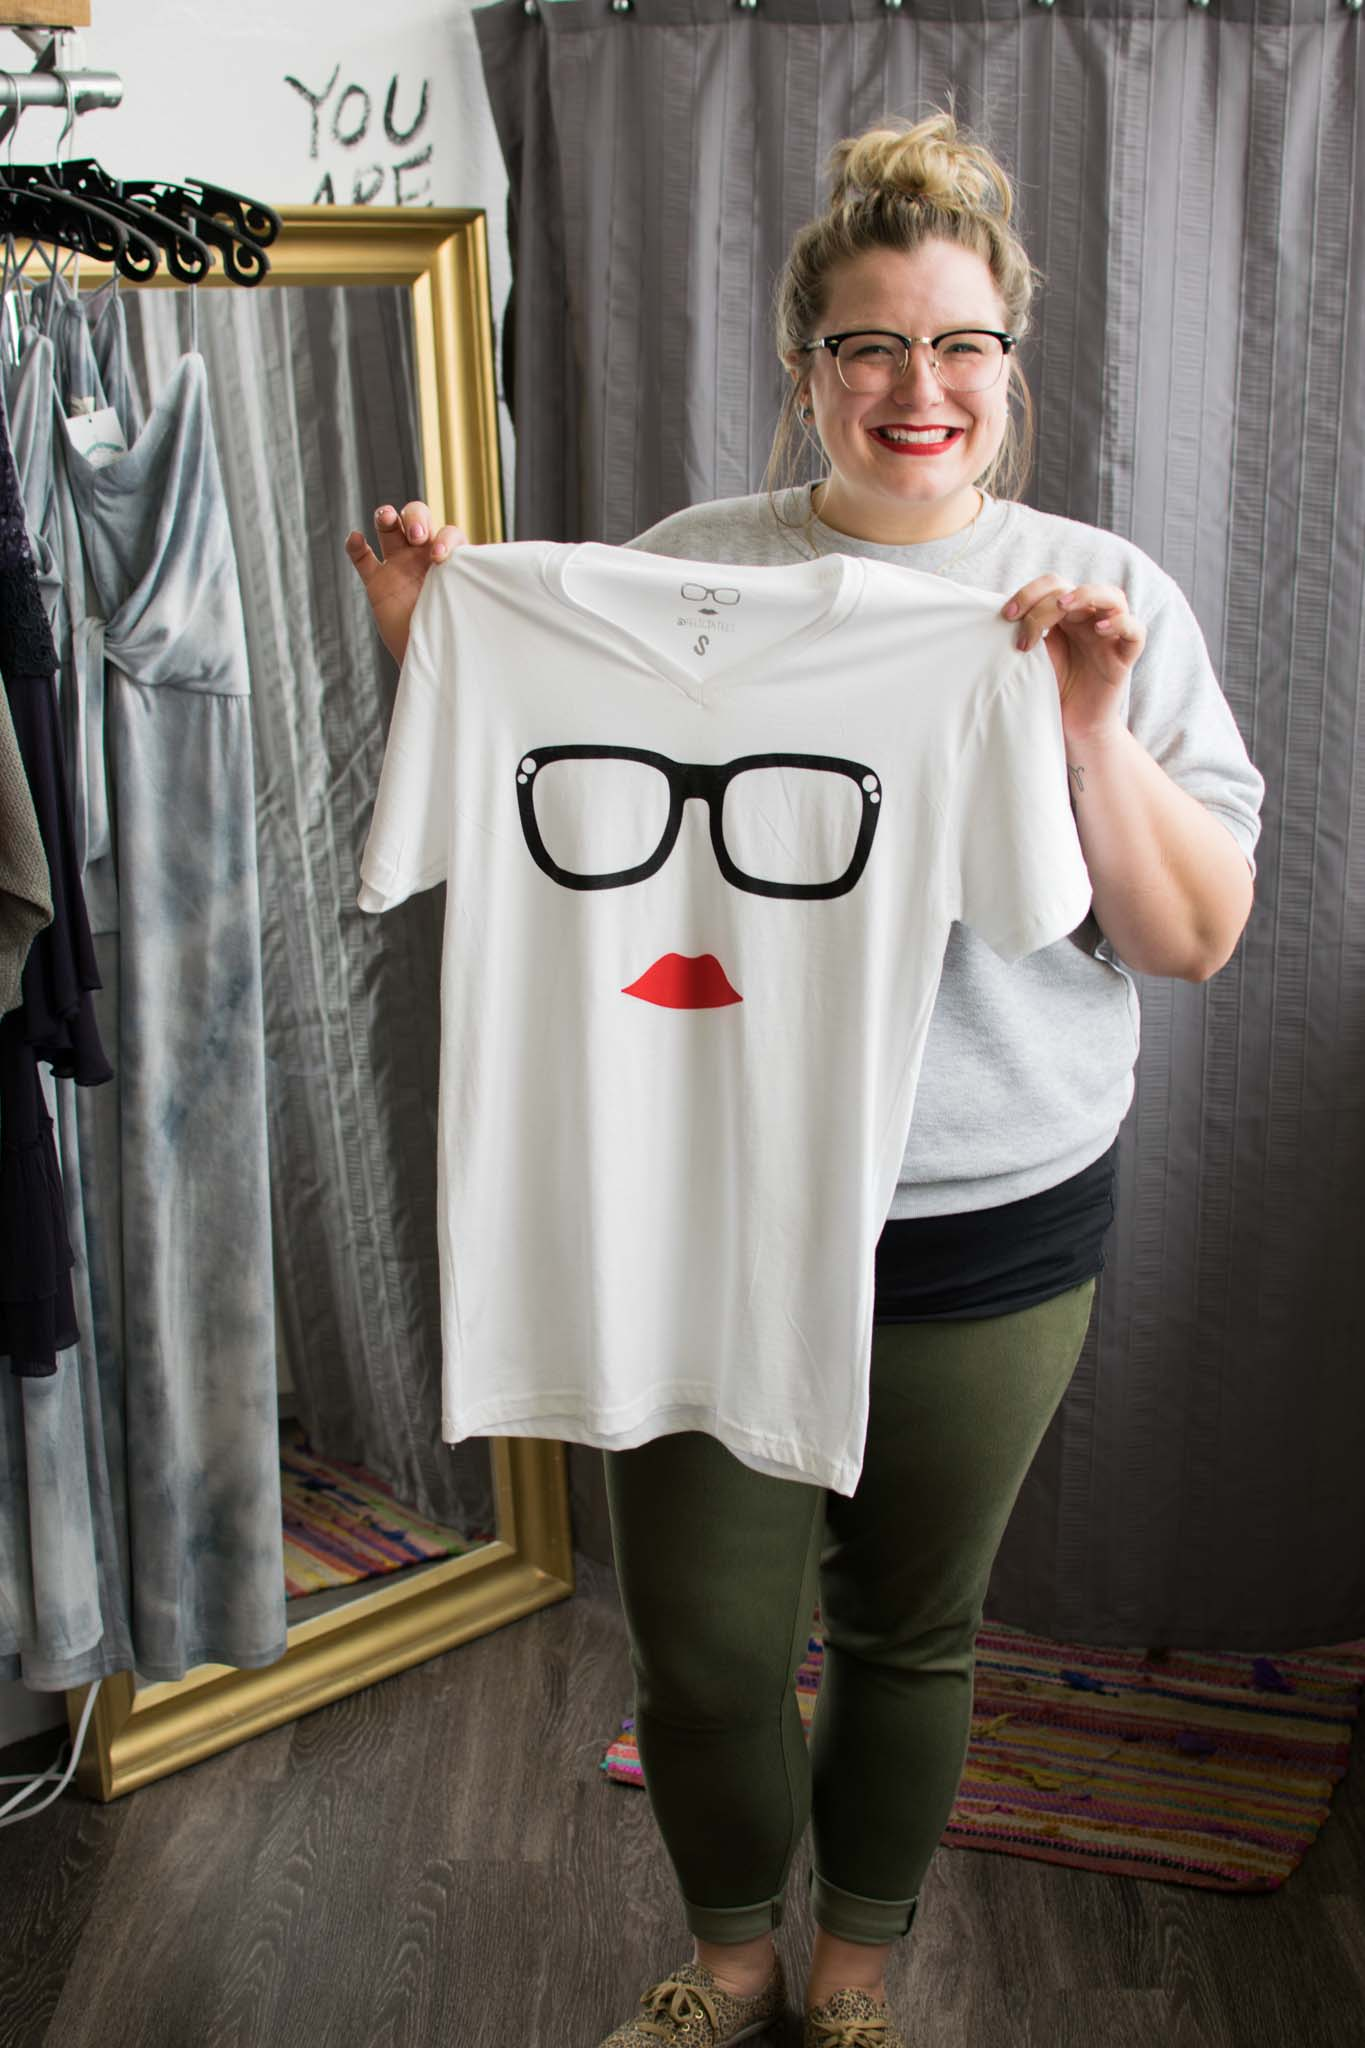 Felicia also created Felicia Tees, this one she designed after herself!